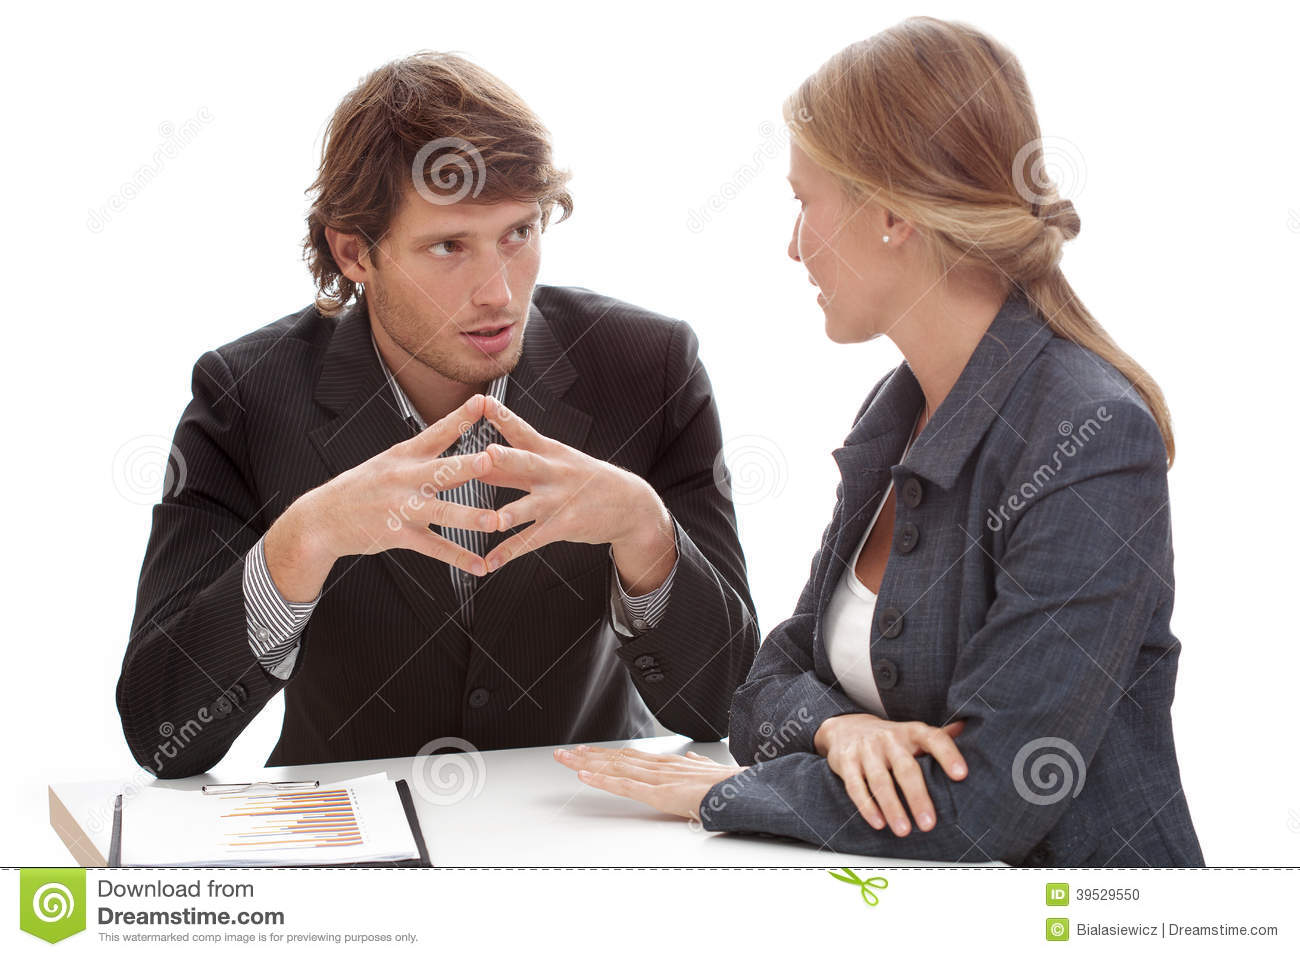 Relaxed office conversation